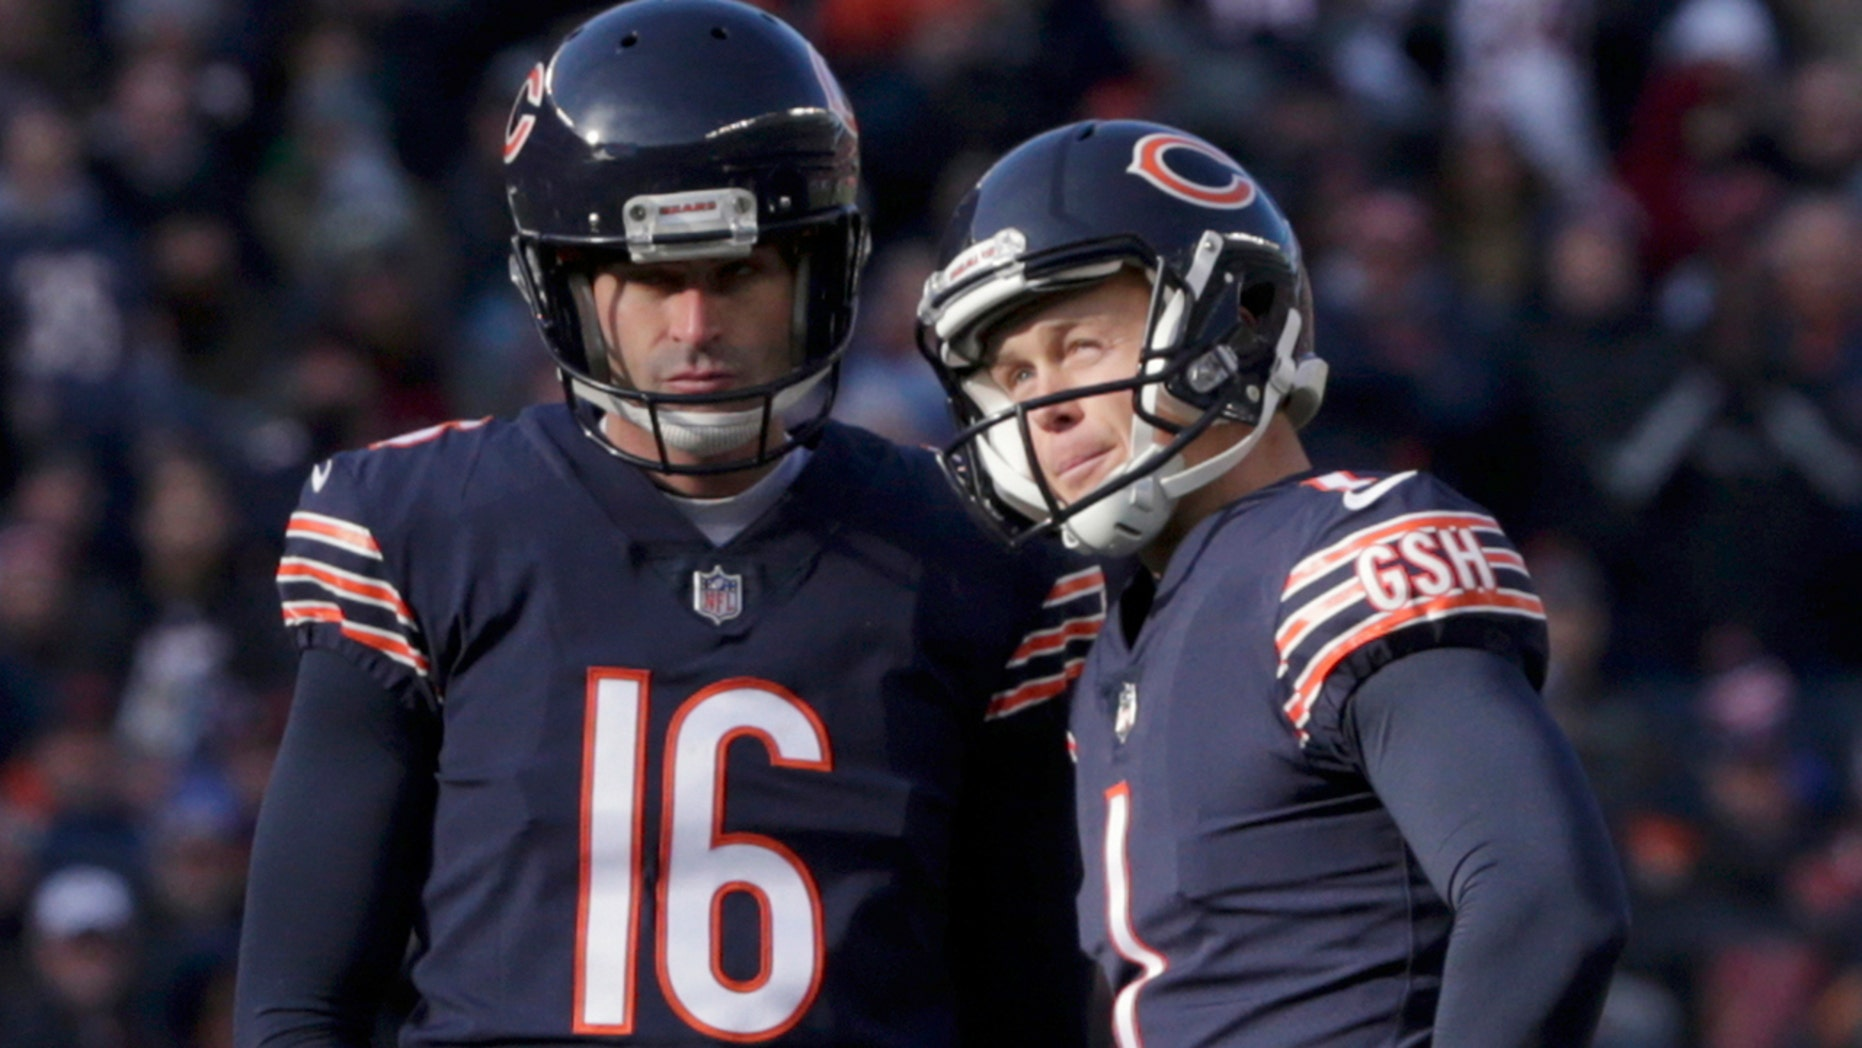 dcded8787fa Cody Parkey got a police escort to practice at Soldier Field. But why stop  there?